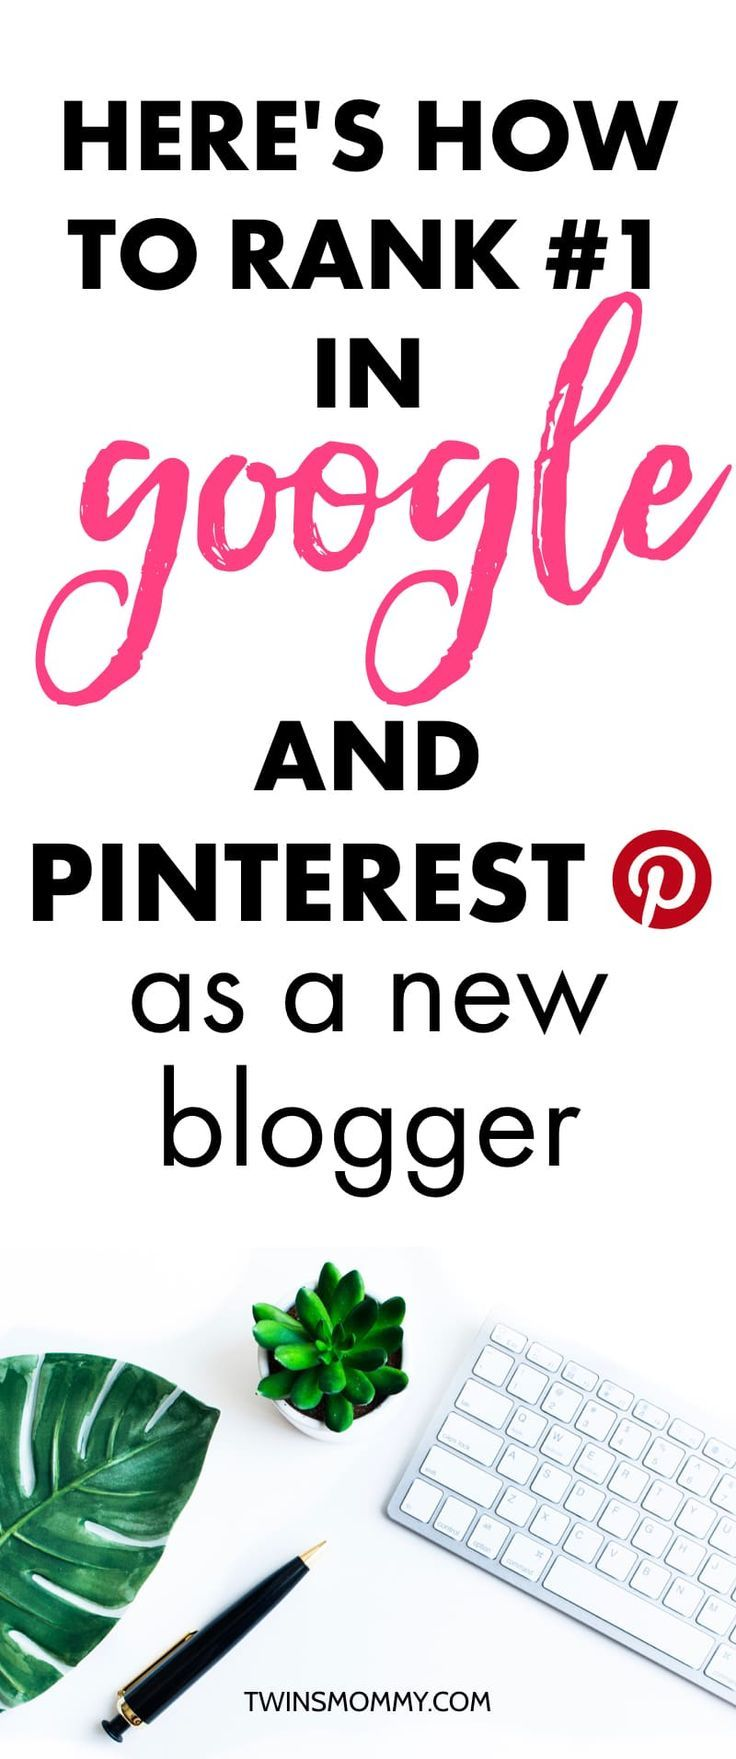 Blogging for beginners 101 tips: make money blogging and rank top on Pinterest and Google. Traffic tips, trick and hacks.